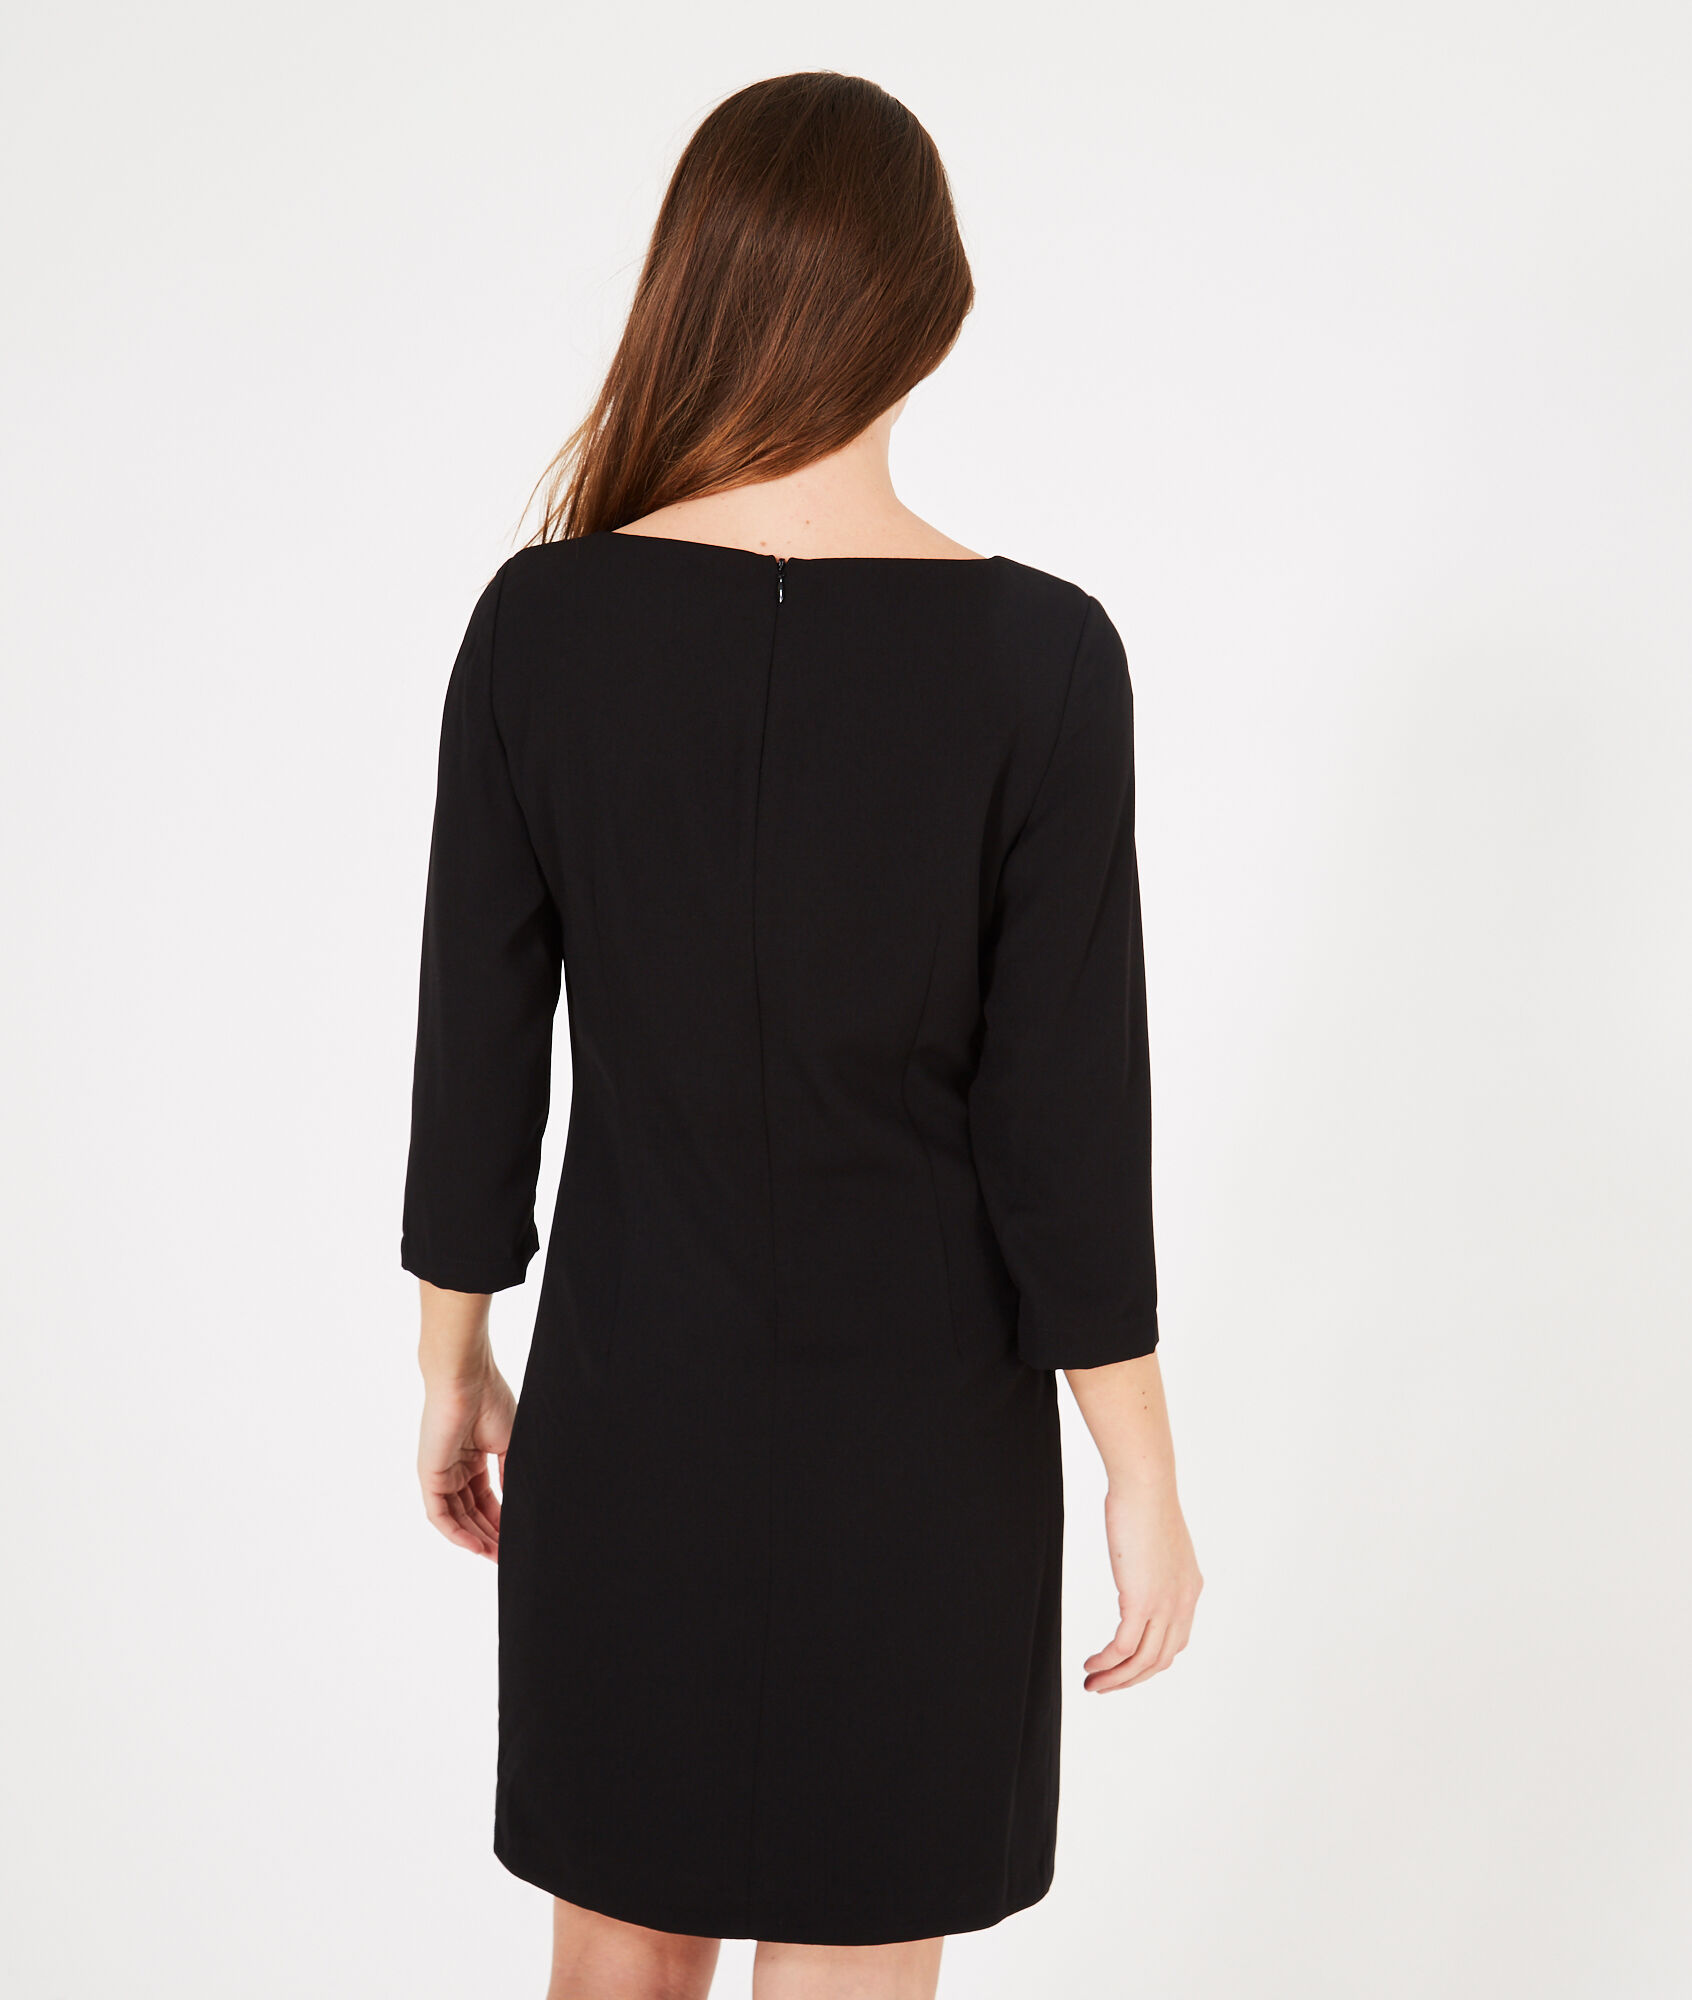 Robe cocktail 1 2 3